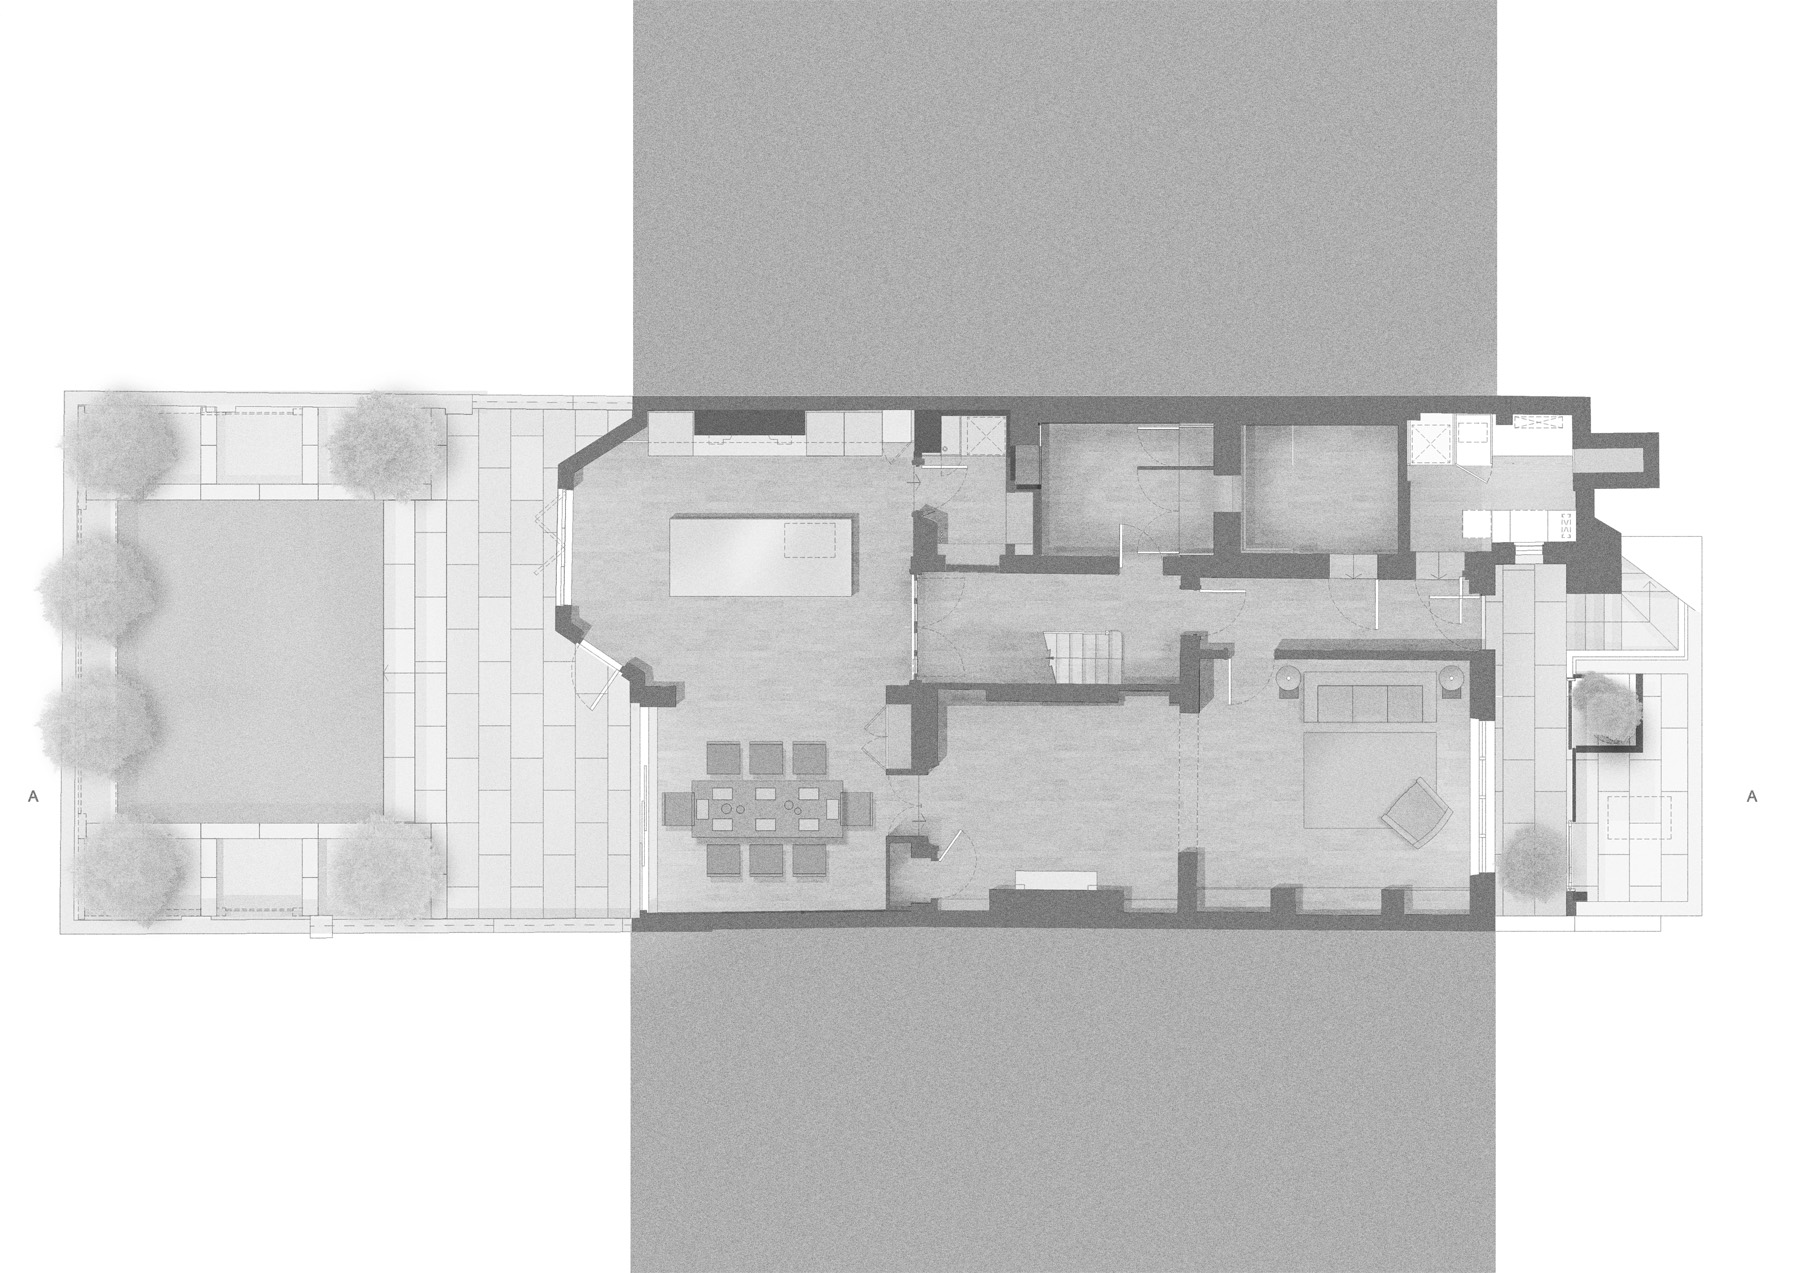 lower ground floor plan.jpg